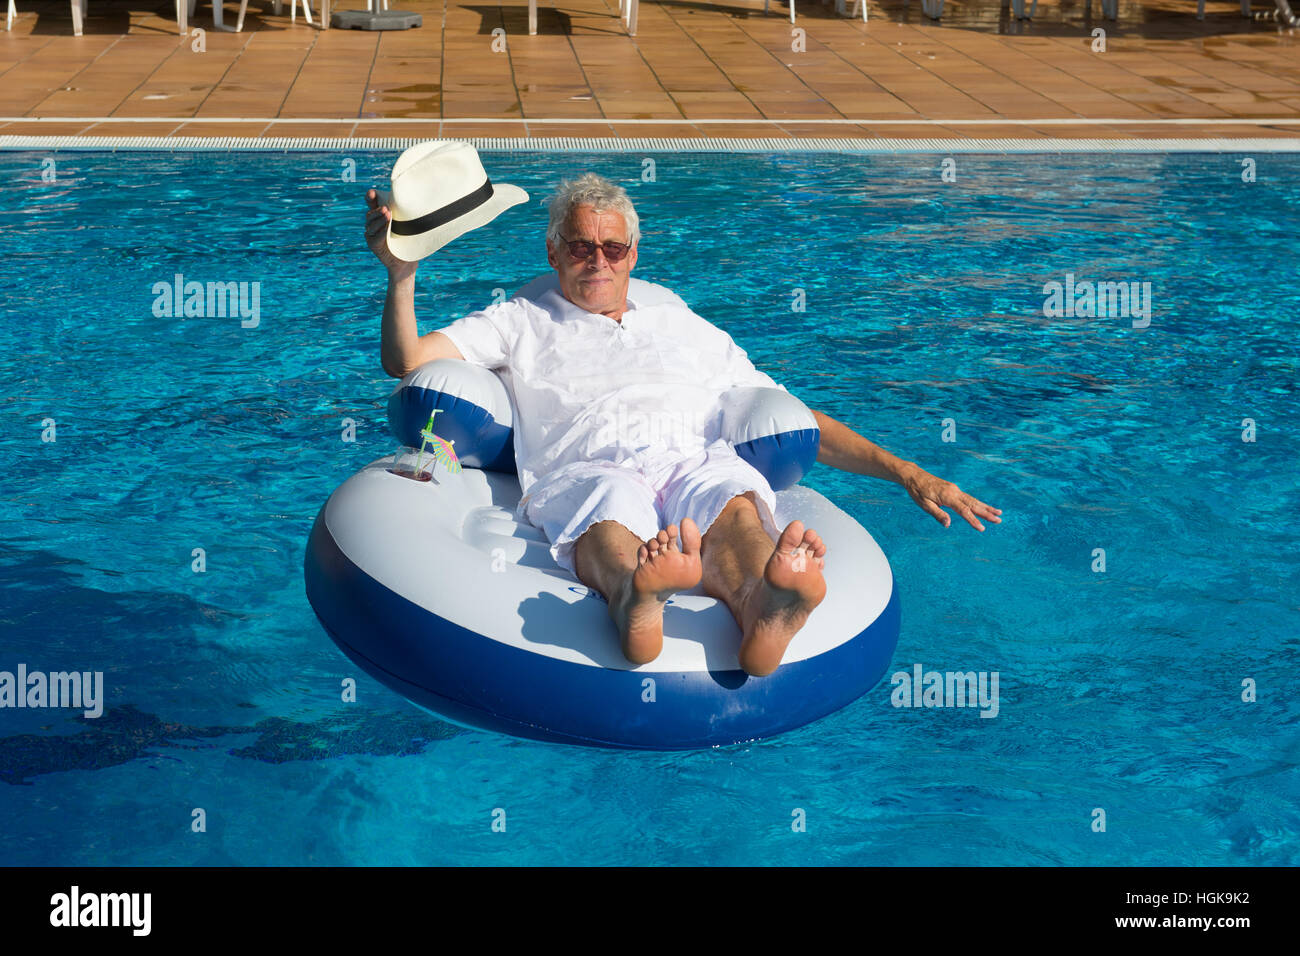 wealthy man relaxing in own swimming pool - Stock Image